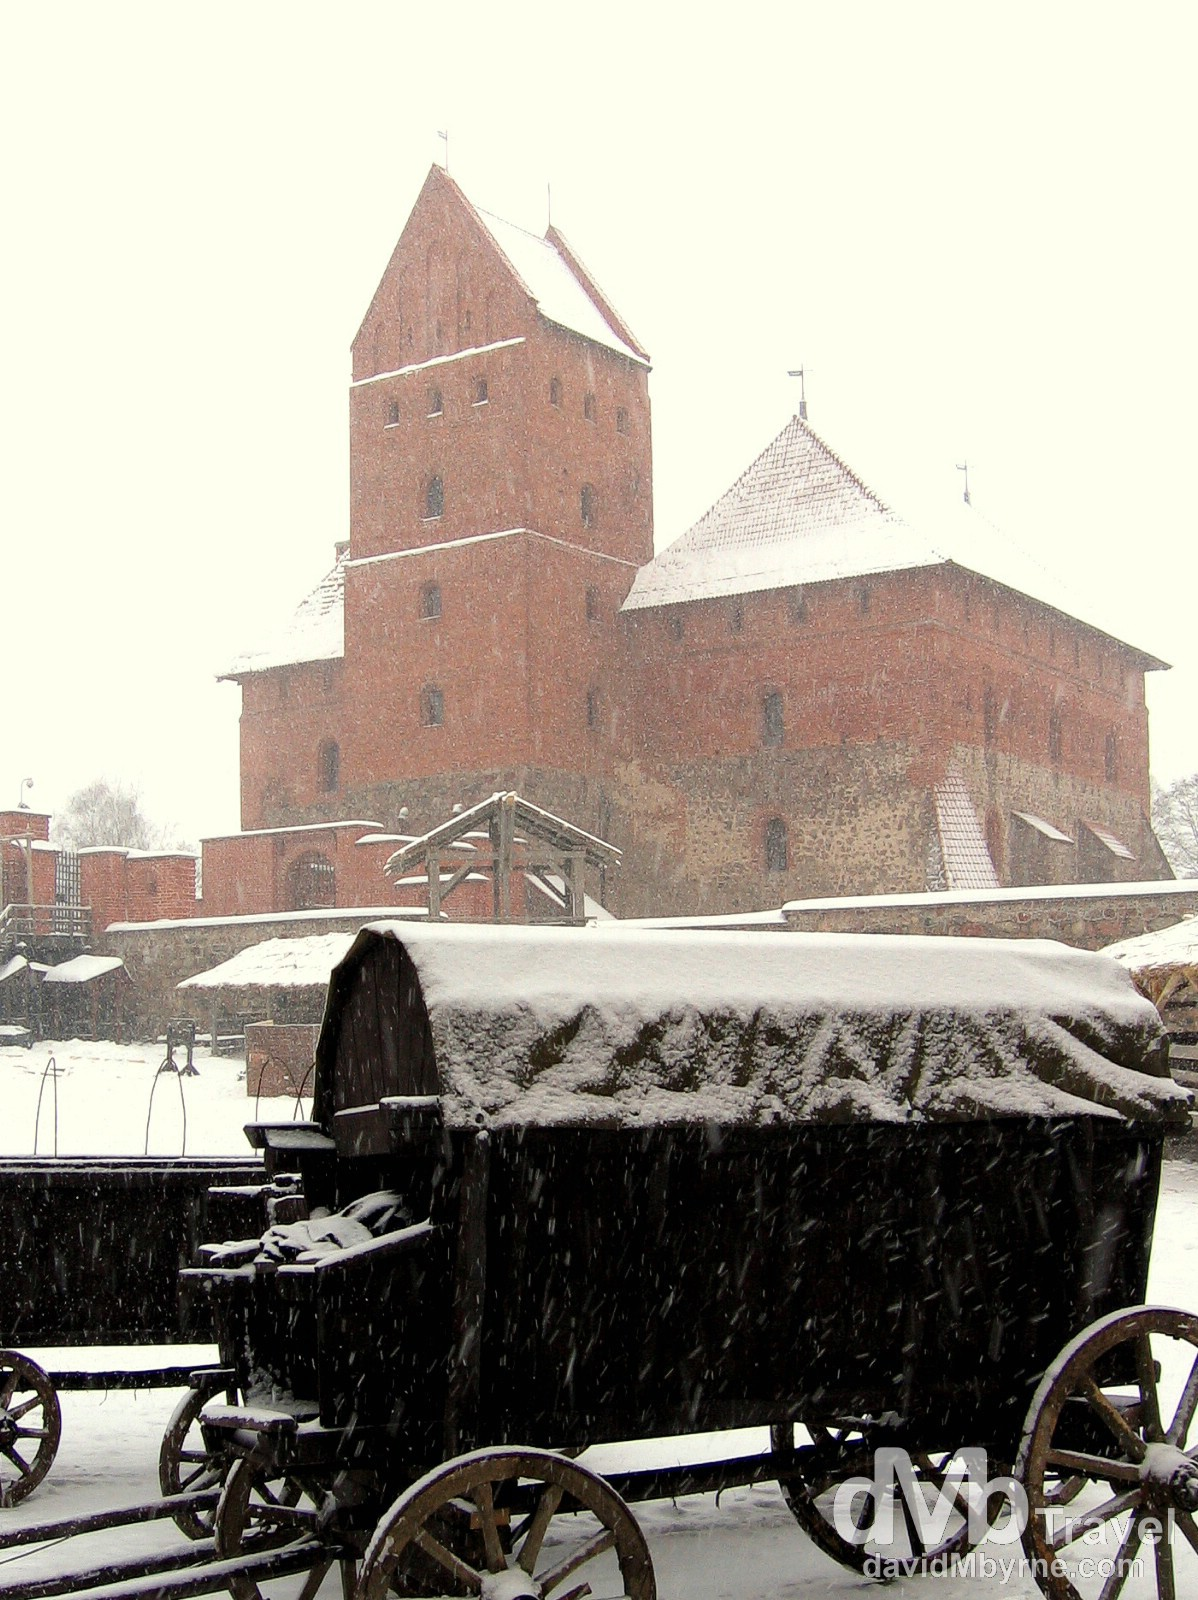 In the central courtyard of Trakai Castle during a heavy blizzard. Trakai, Lithuania. March 4, 2006.